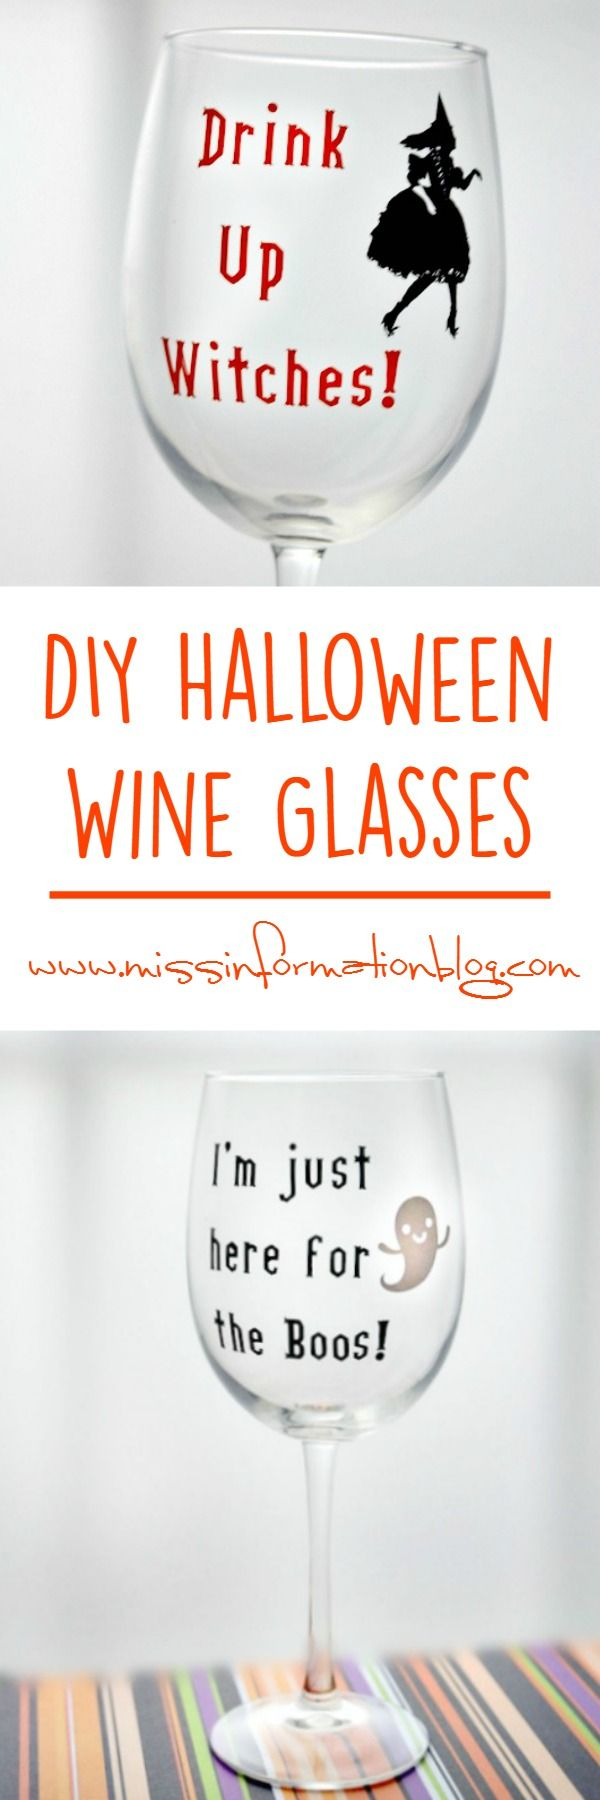 DIY Halloween Wine Glasses with Cricut and vinyl so fun and step by step instructions for how to apply it to a curved surface!